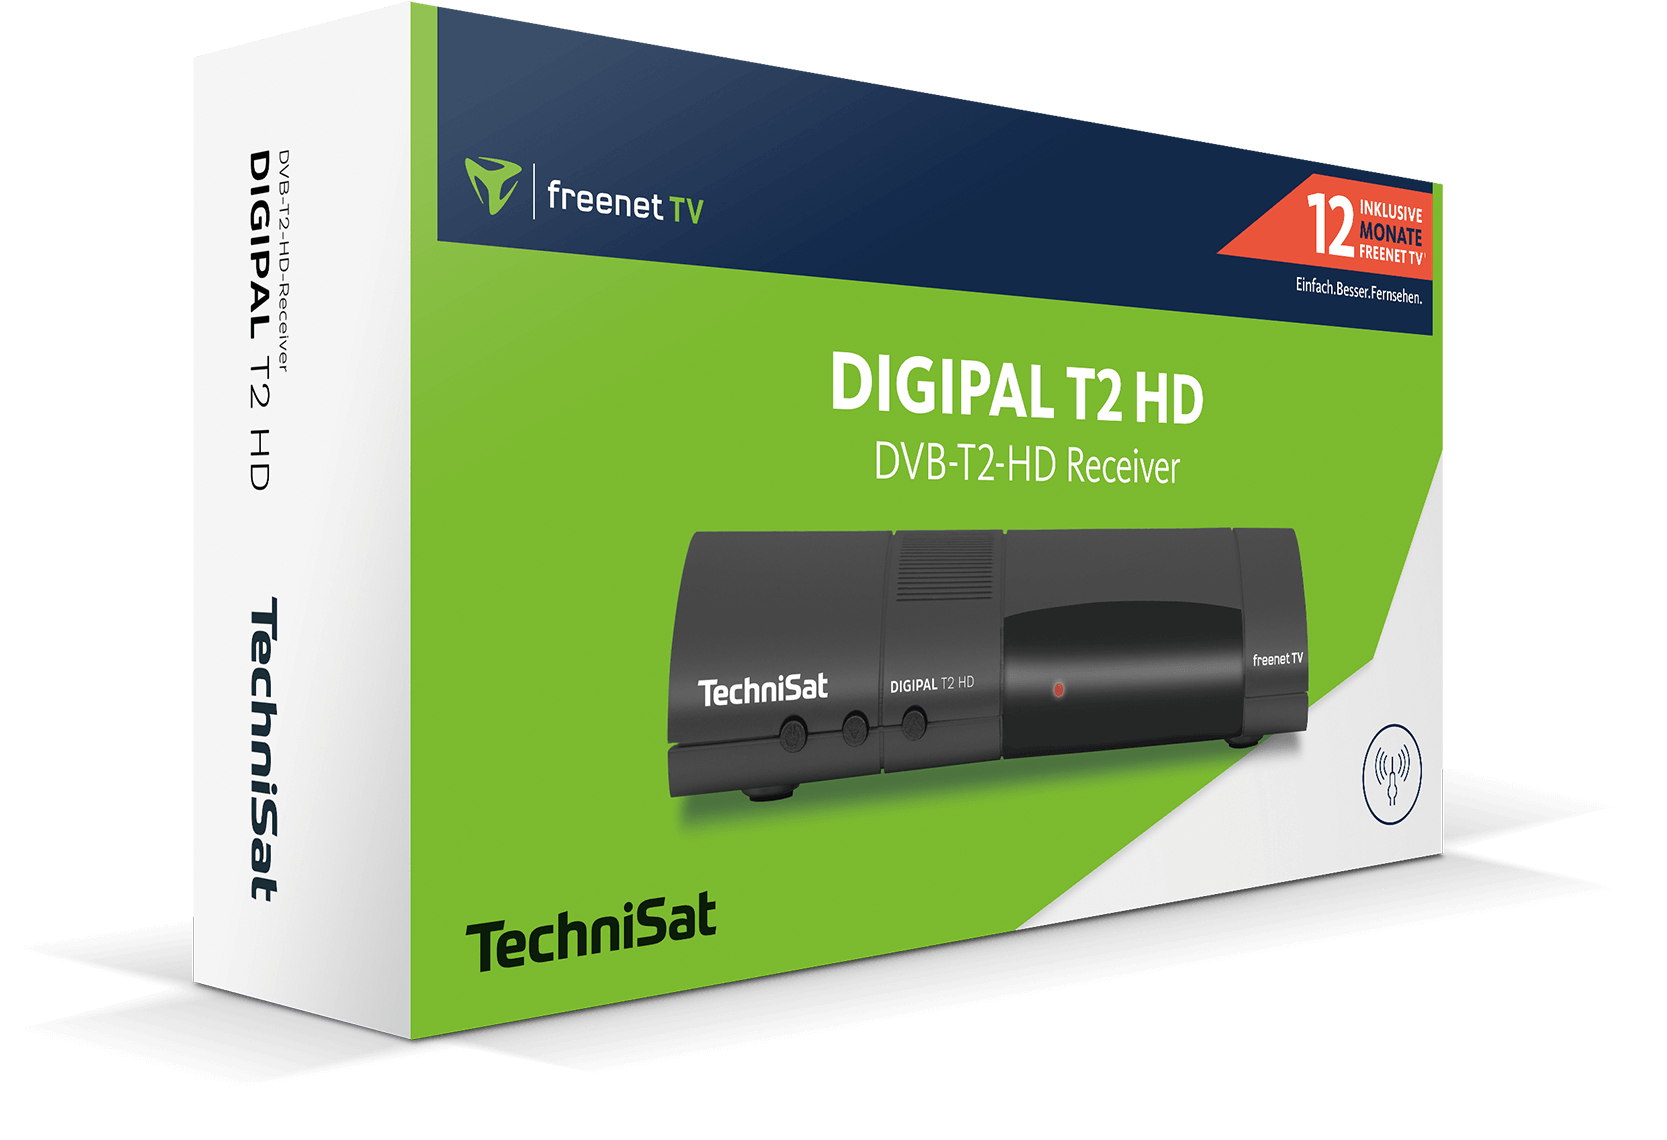 DIGIPAL T2 freenet TV Edition